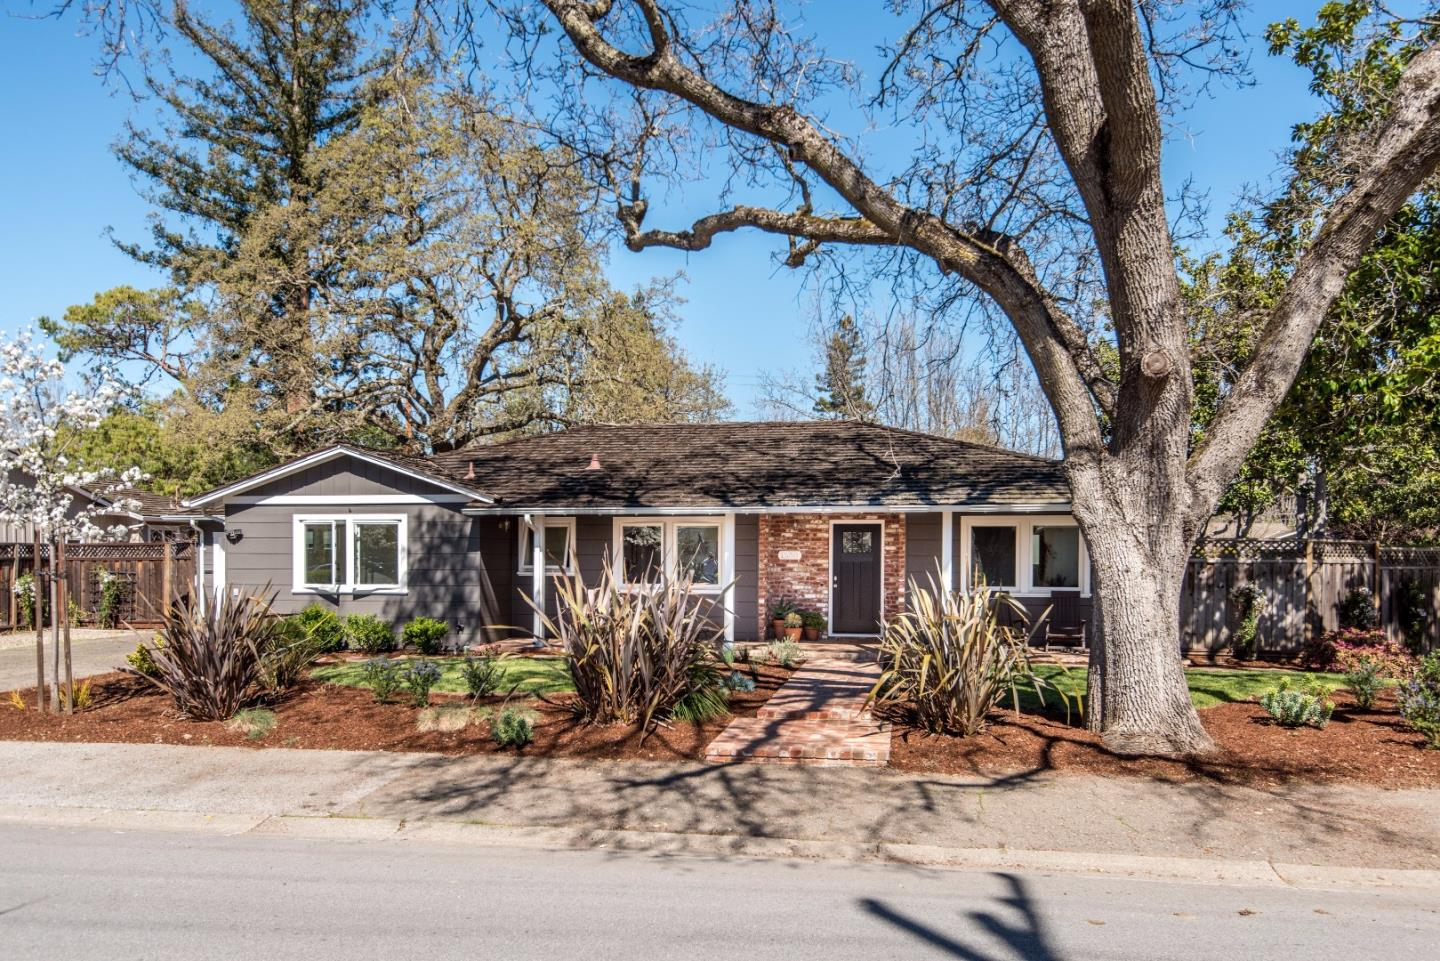 Additional photo for property listing at 1350 Elder Ave  MENLO PARK, CALIFORNIA 94025